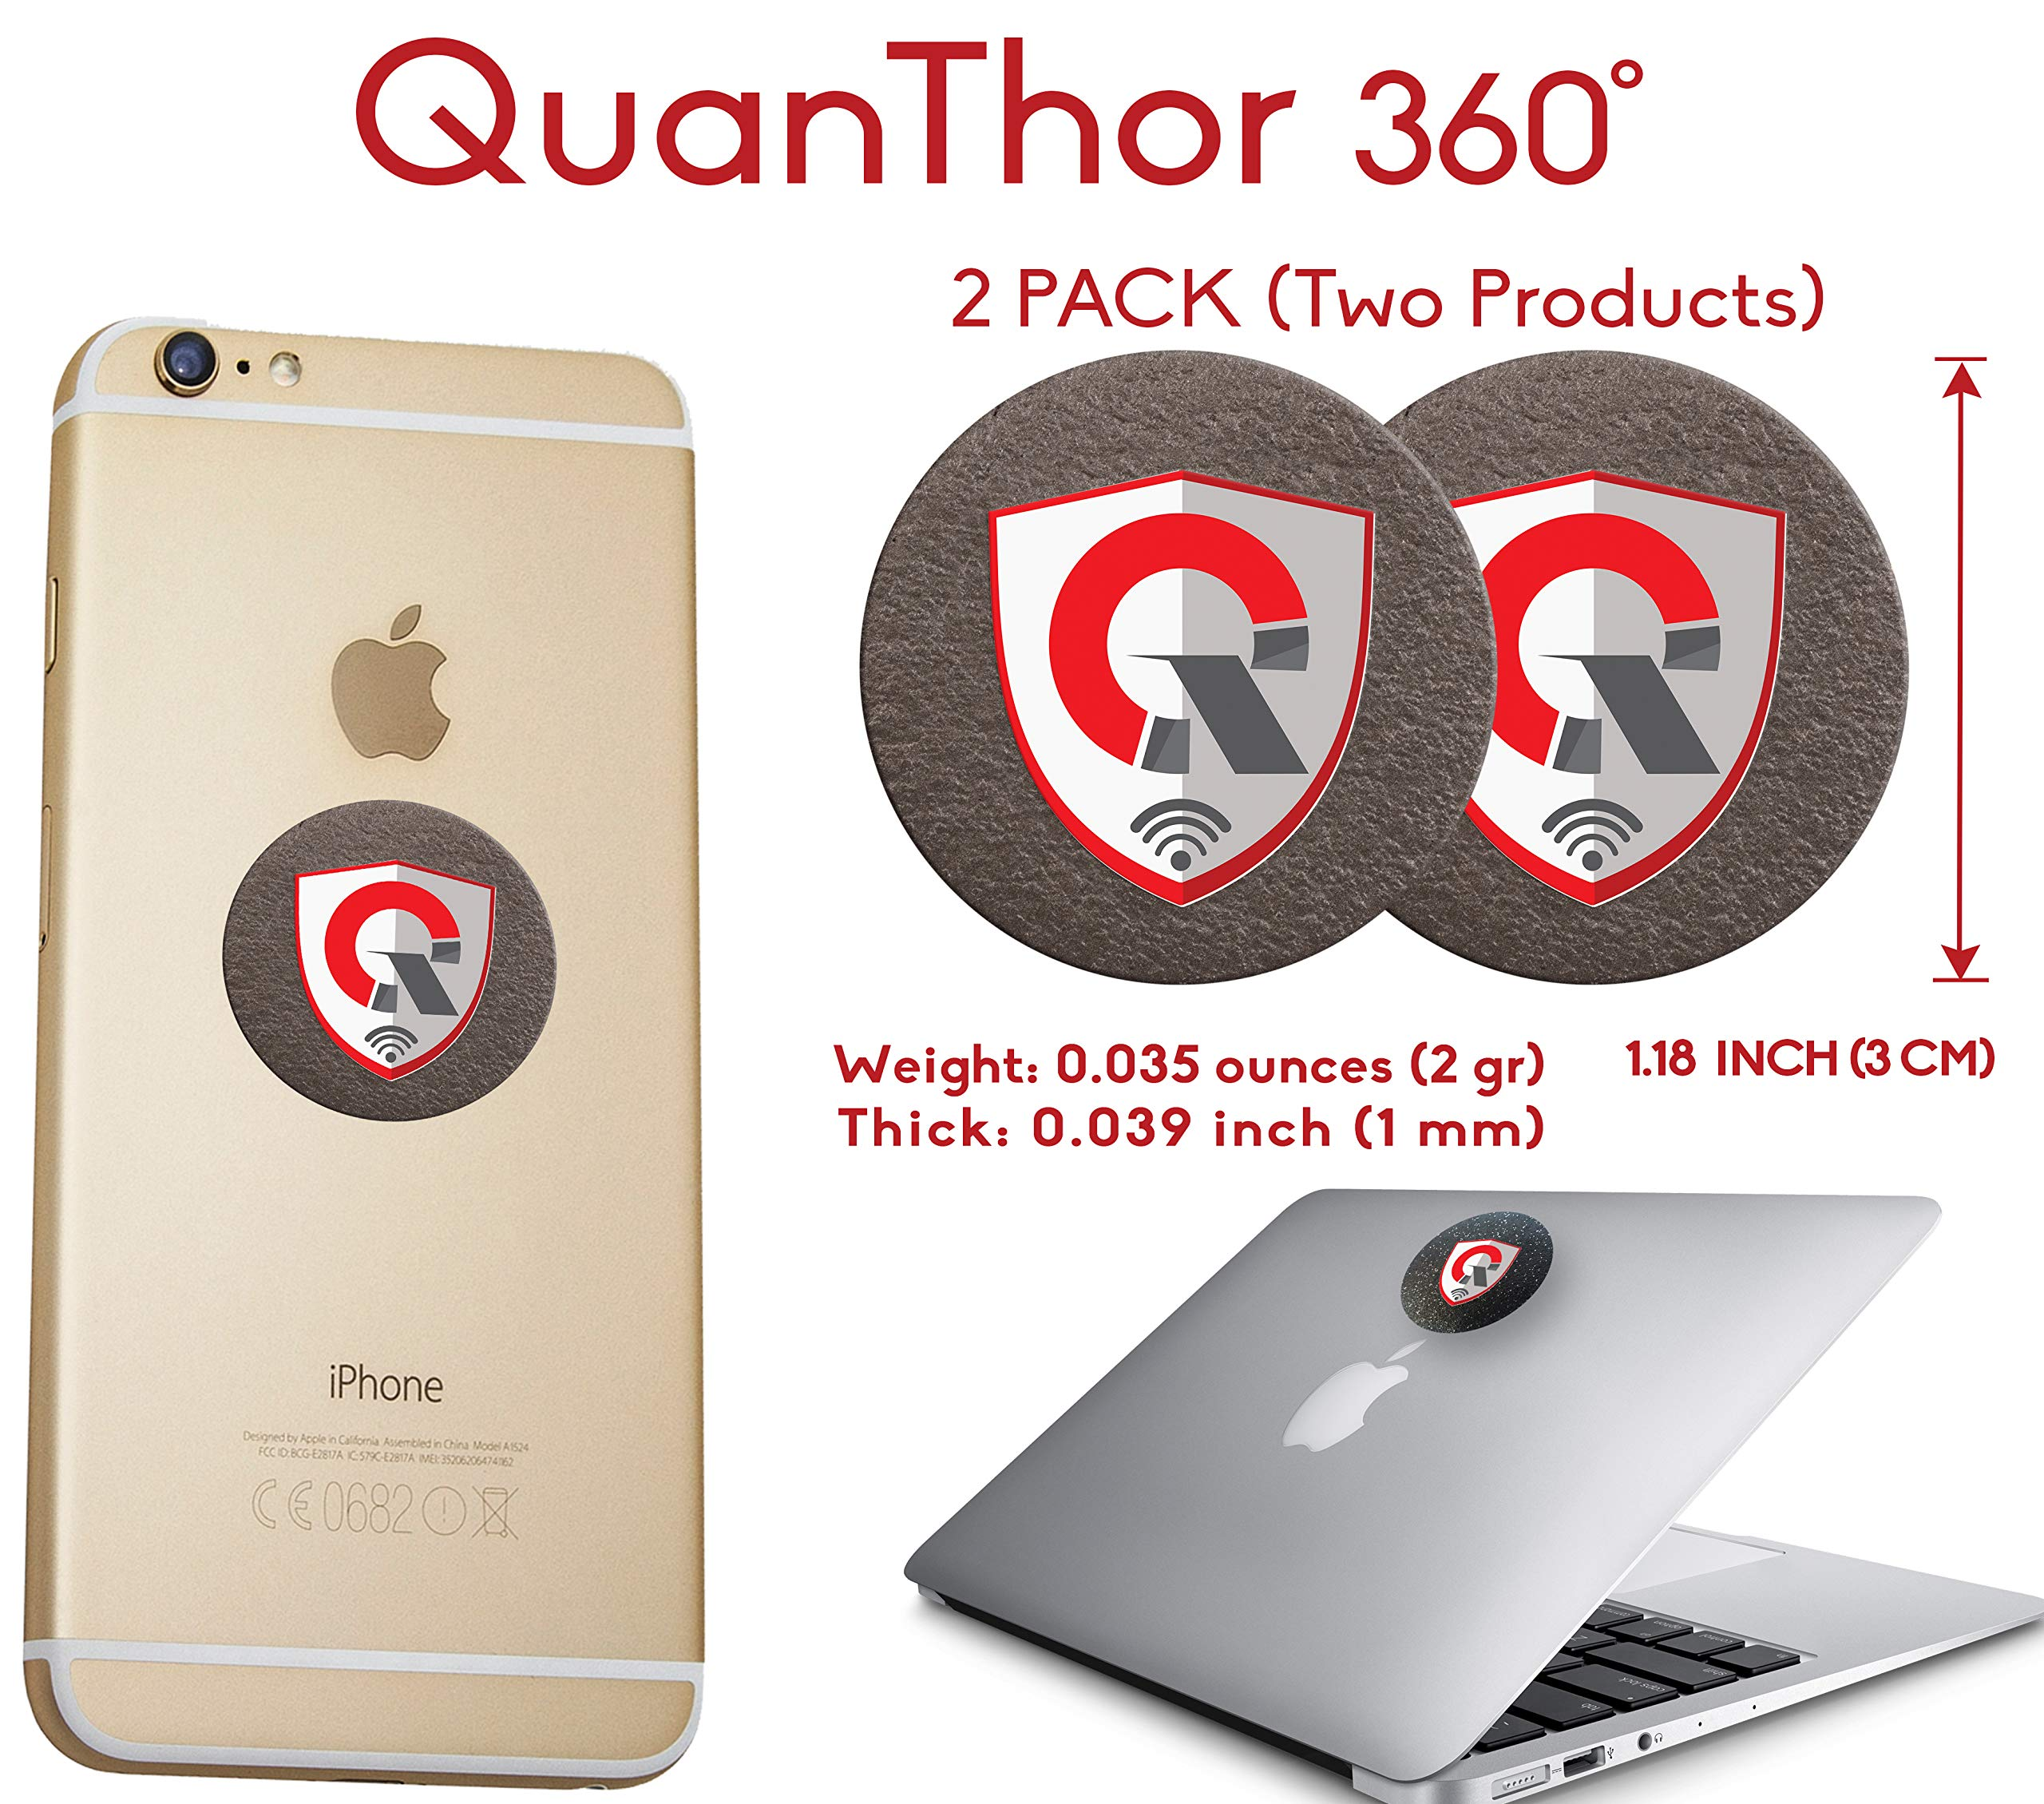 2Pack: 360 Round EMF Protection Cell Phone Tesla Technology: EMF Absorption from WiFi, Laptop - All Bad EMF Devices| Negative Ion Generator| Radiation Blocker Shield, EMF Blocker Device (1.18 INCH) by QUANTHOR